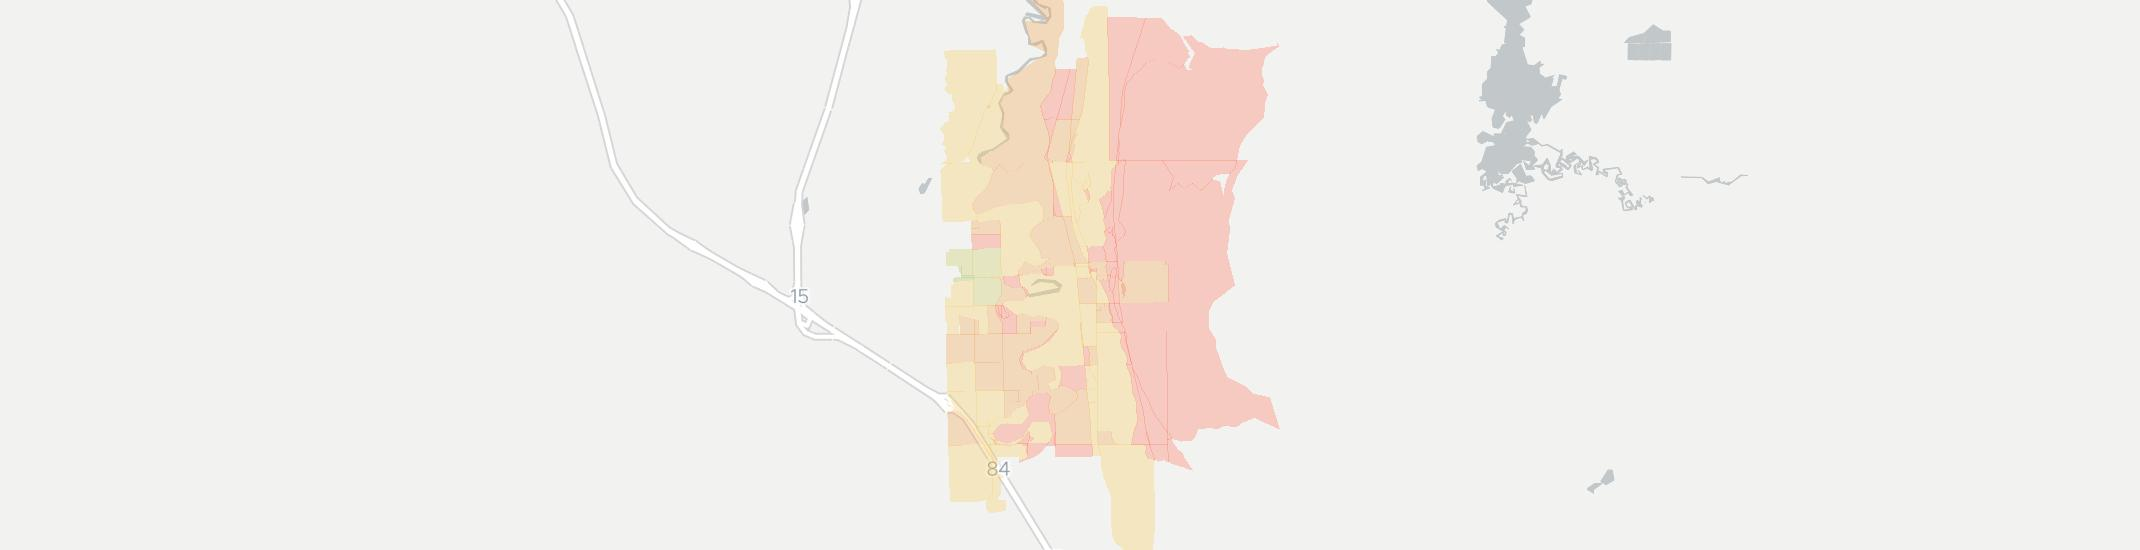 Deweyville Internet Competition Map. Click for interactive map.